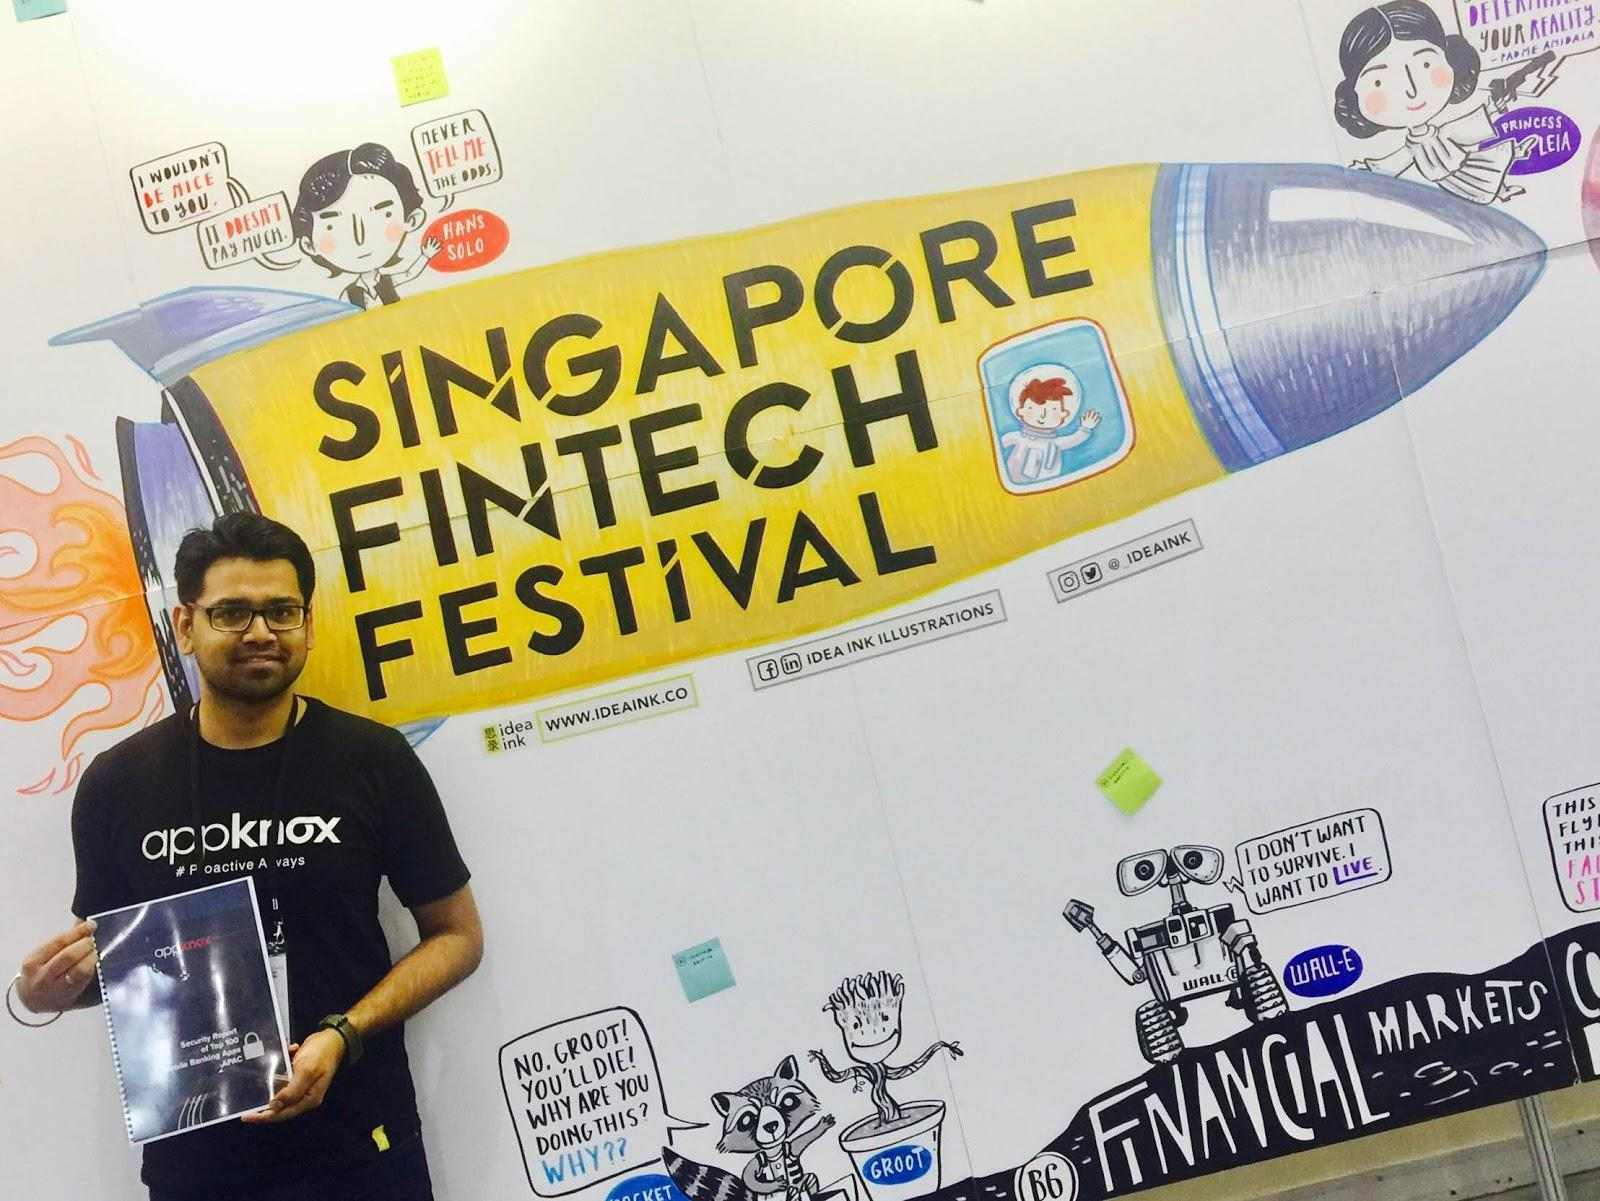 Launch of the Latest Security Report on Bank Apps in APAC at Singapore FinTech Festival